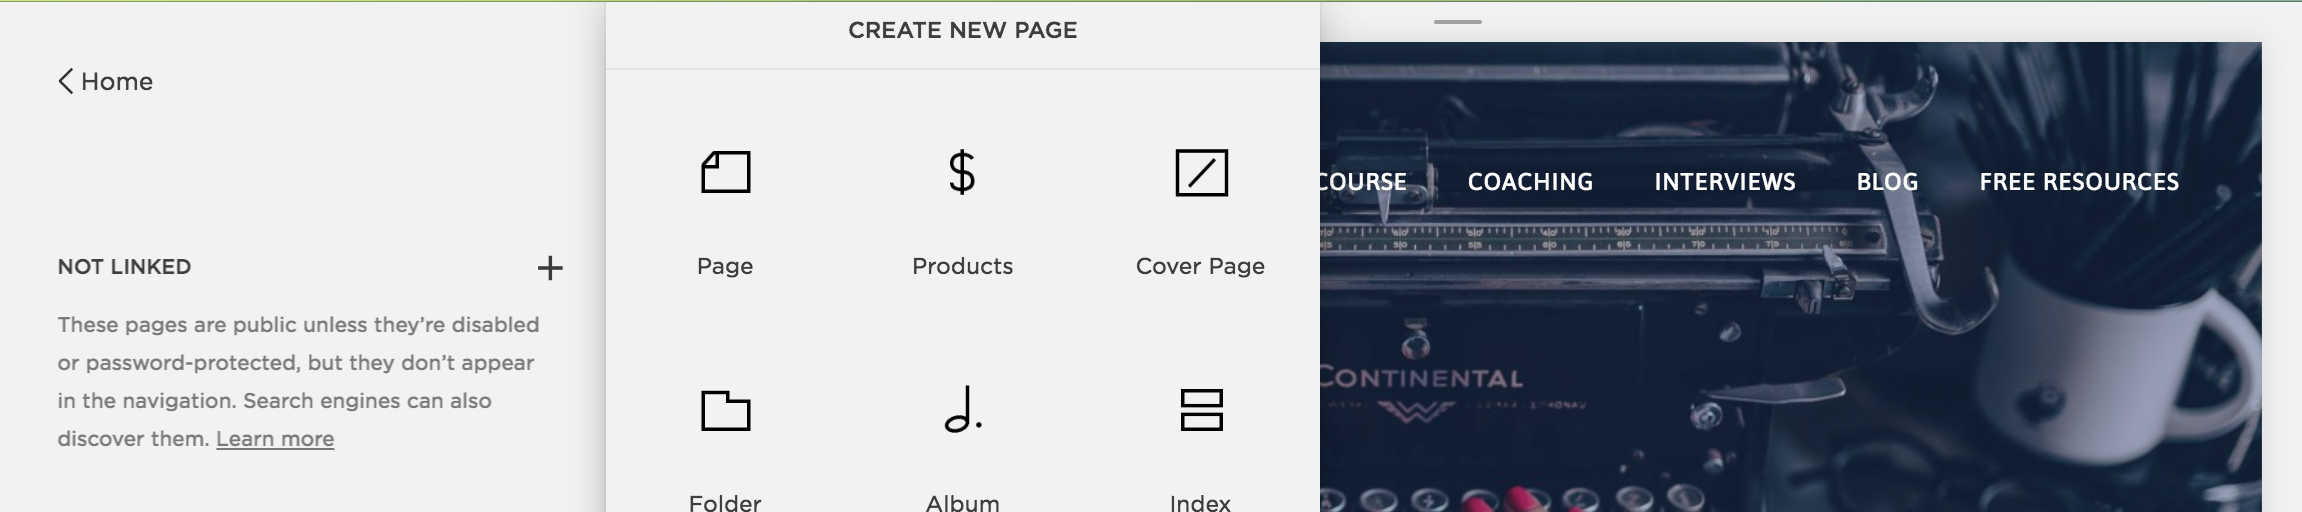 Add a new unlinked page